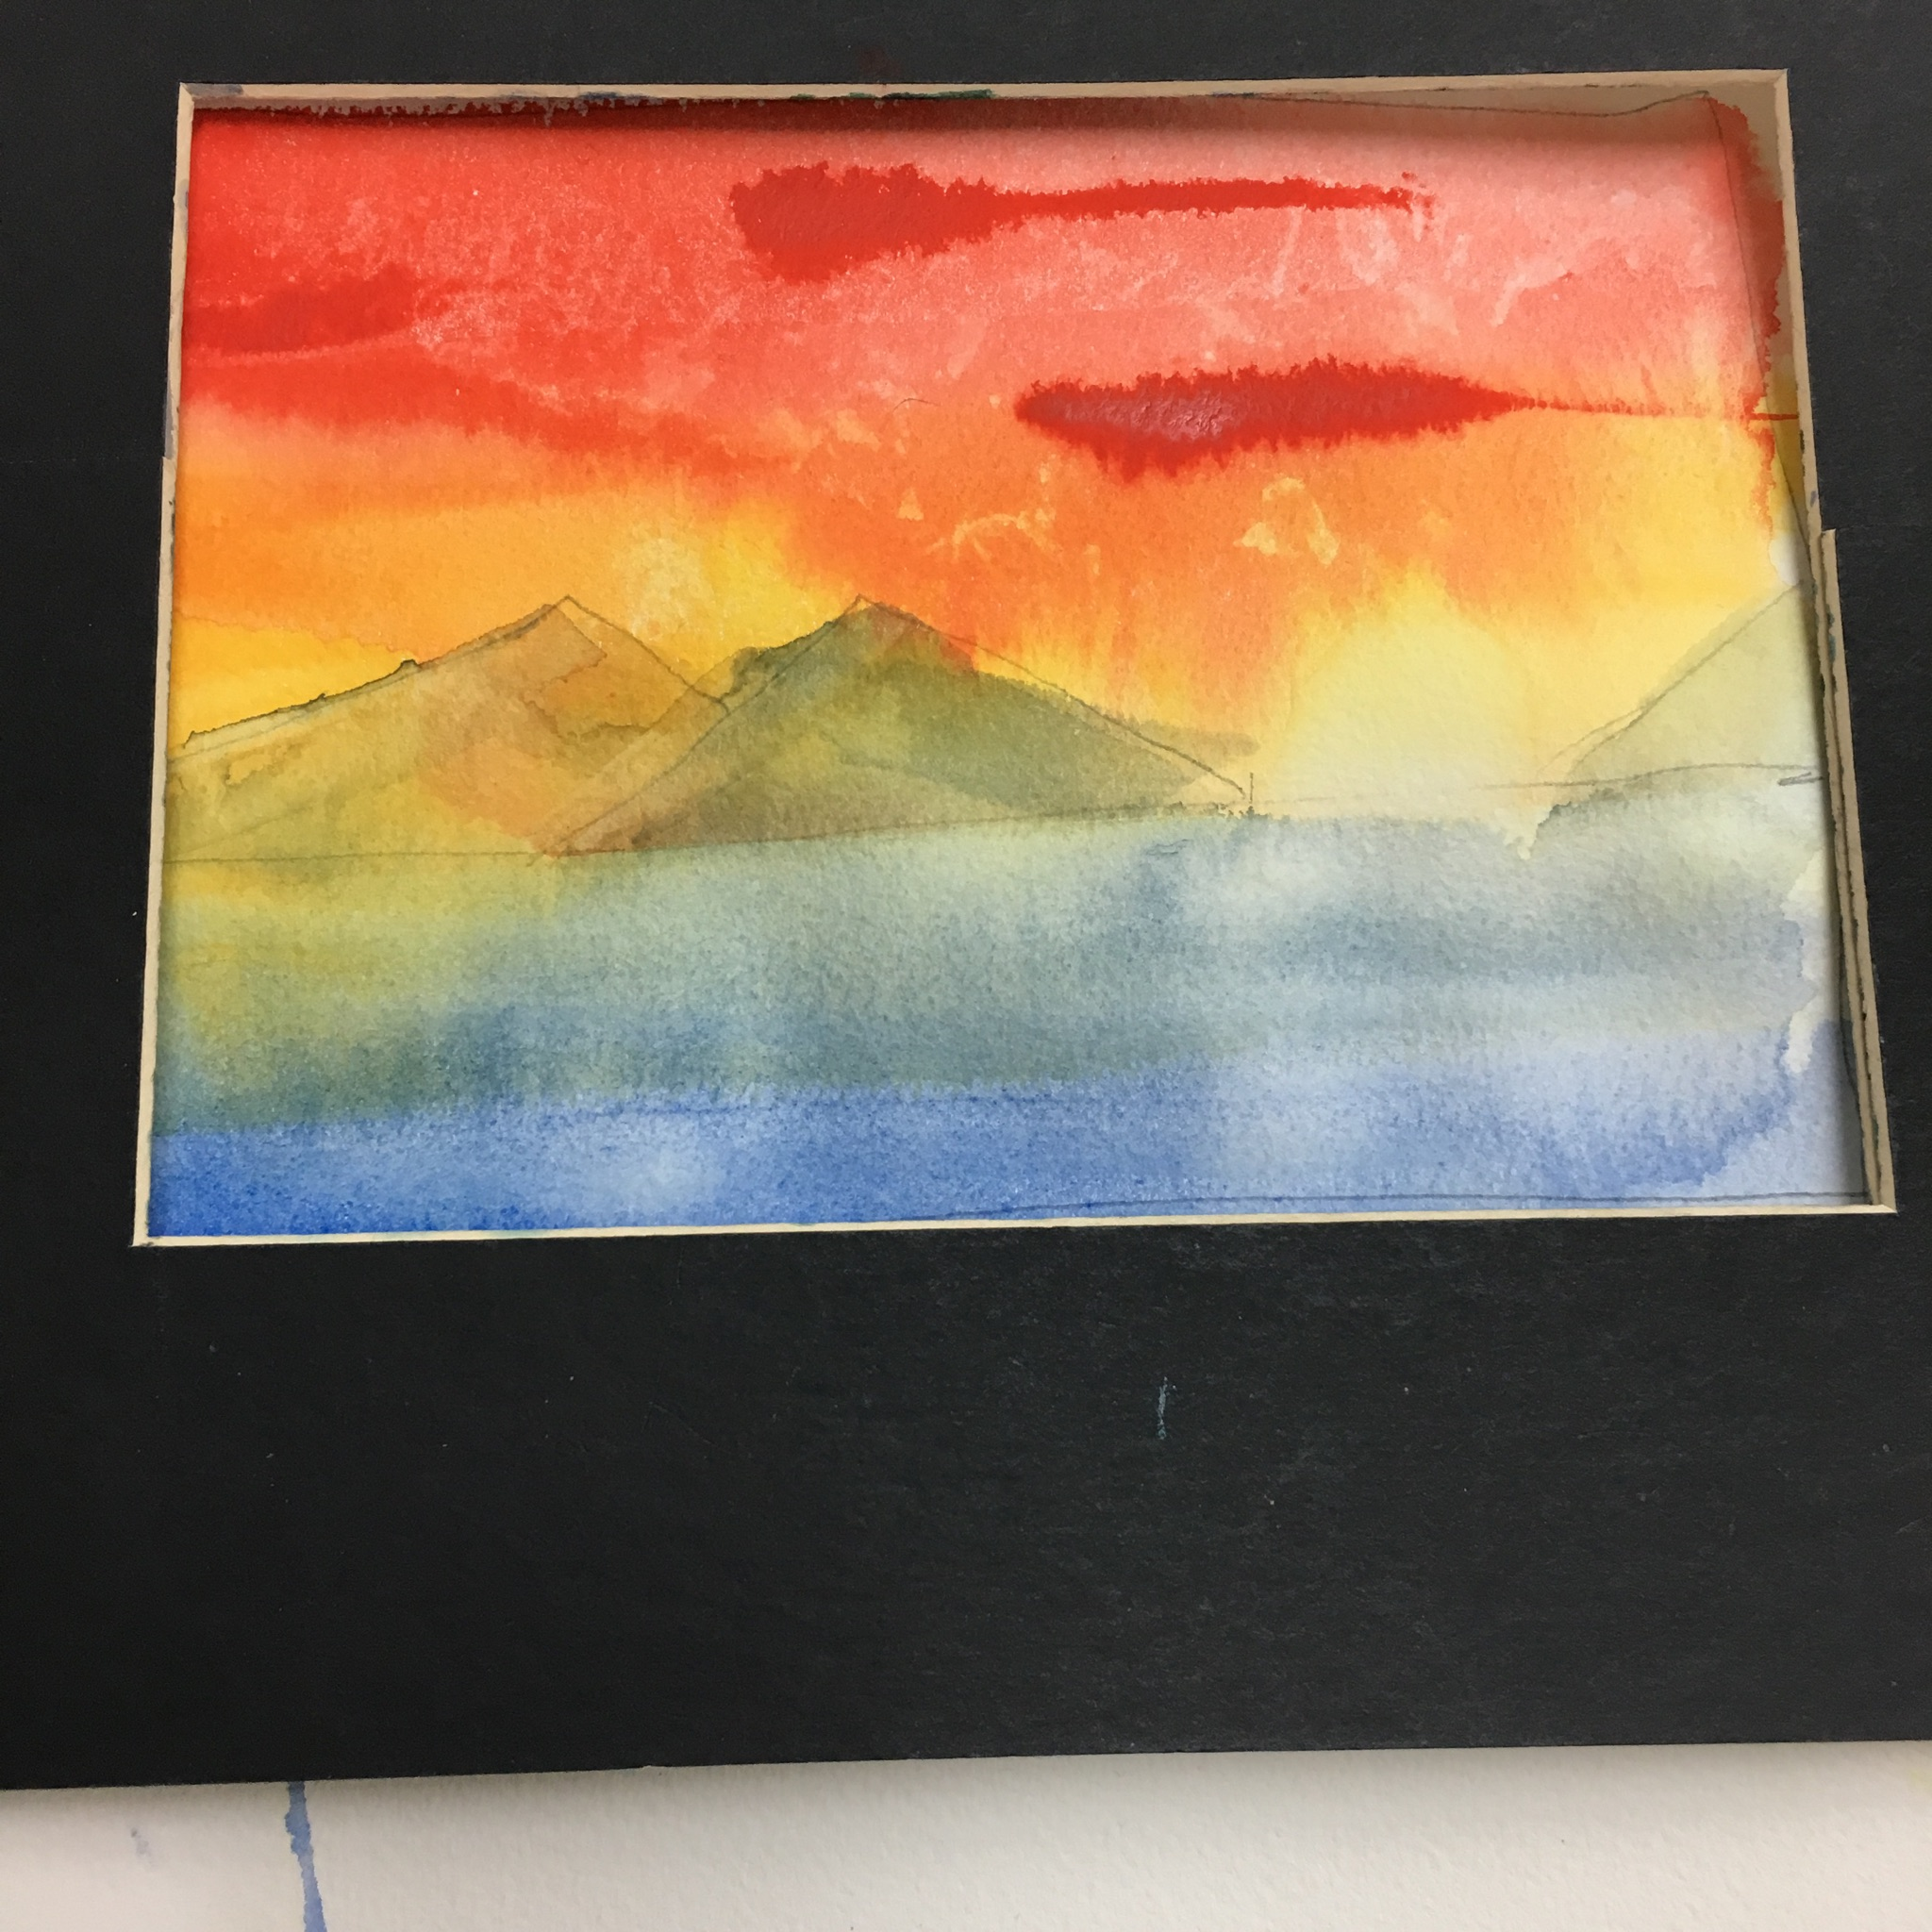 Here is one from a class exercise -- a sunrise (or sunset, could be either)